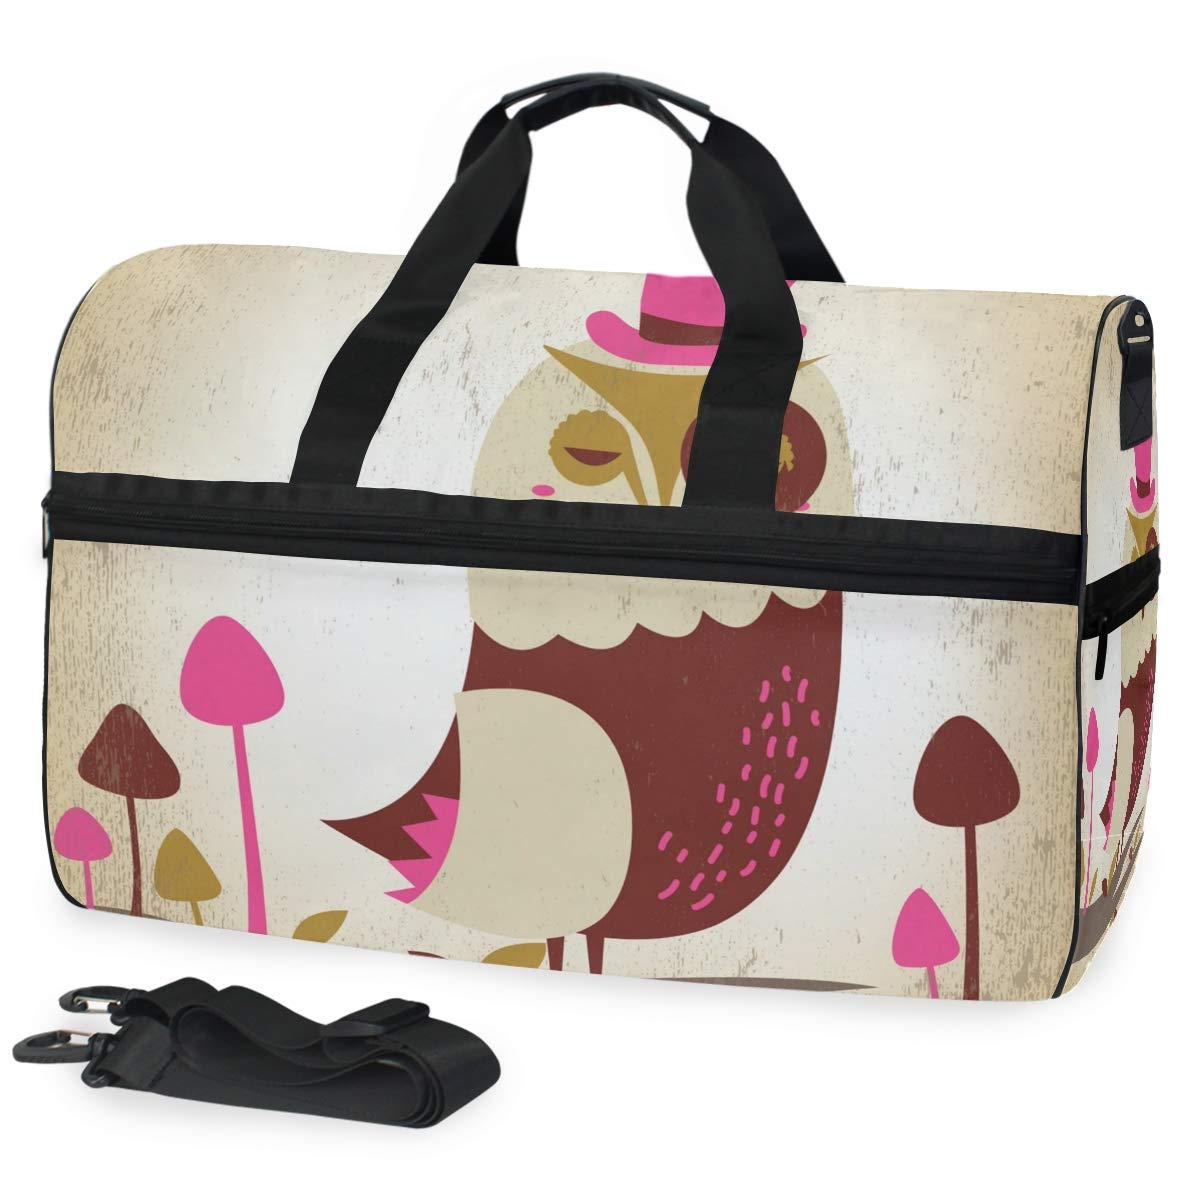 Travel Duffel Bag Vintage Cute Forest Owl Bird Waterproof Lightweight Luggage bag for Sports Gym Vacation